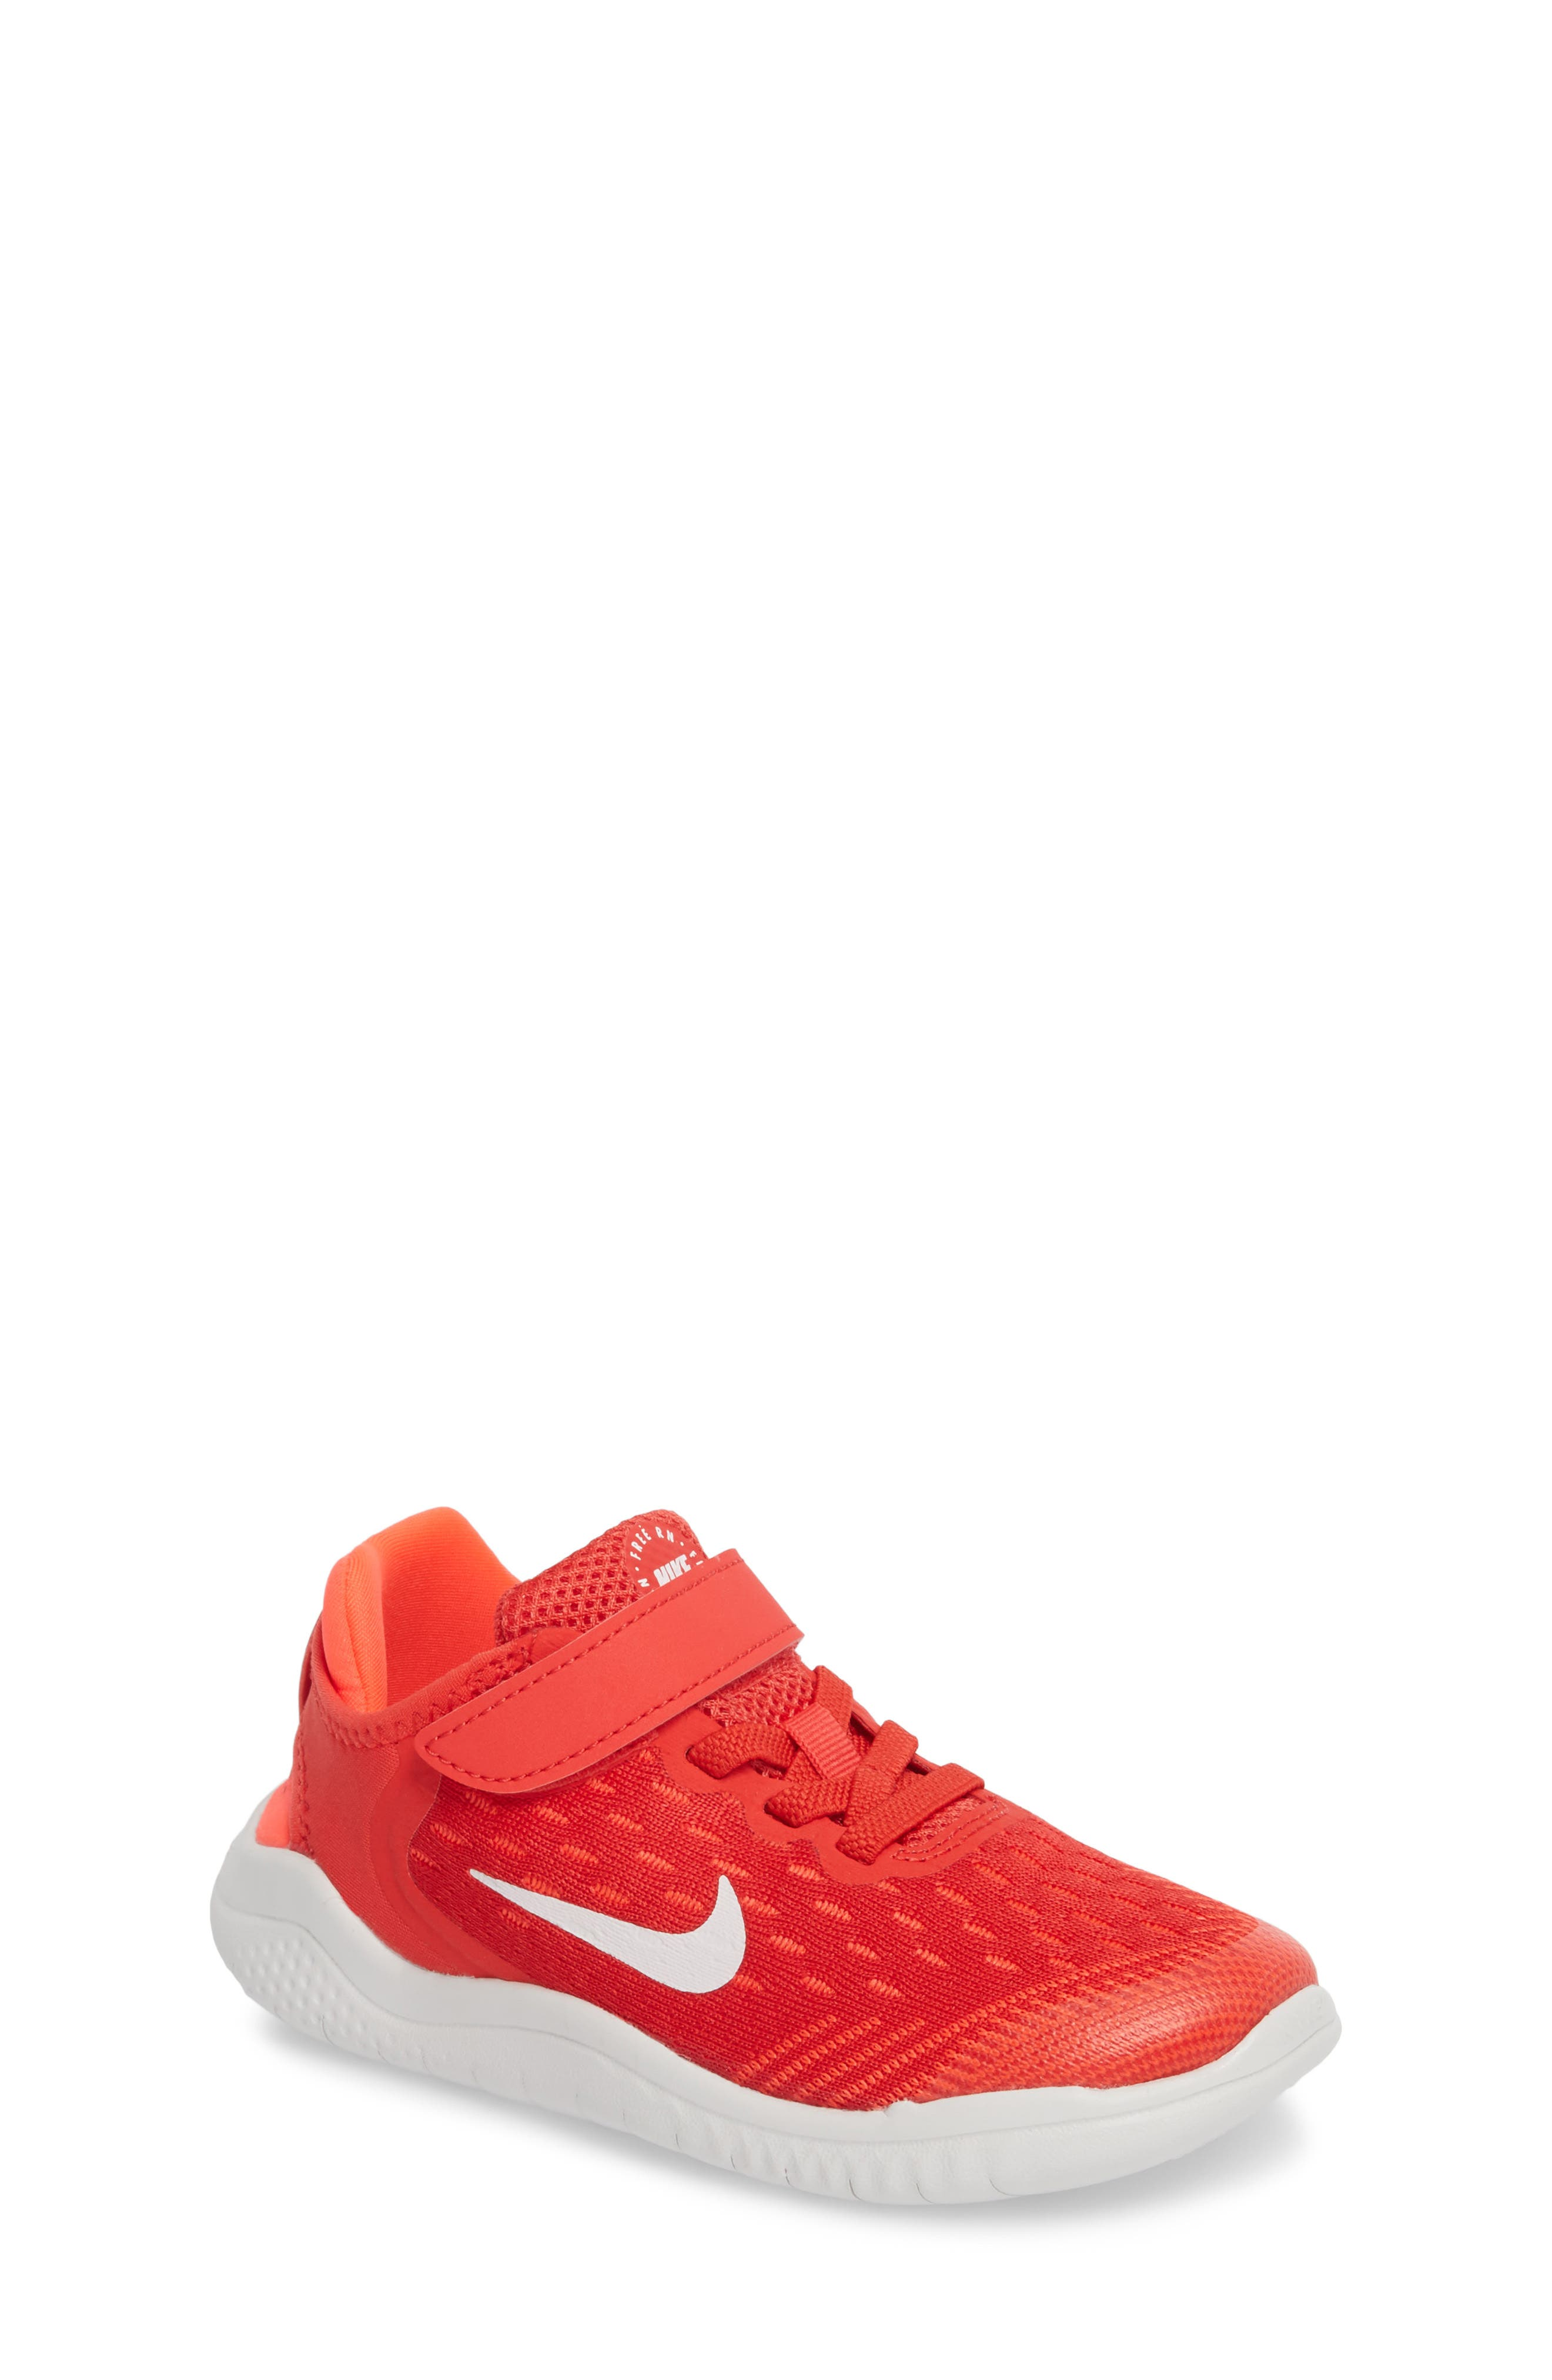 NIKE Free RN Running Shoe, Main, color, 600